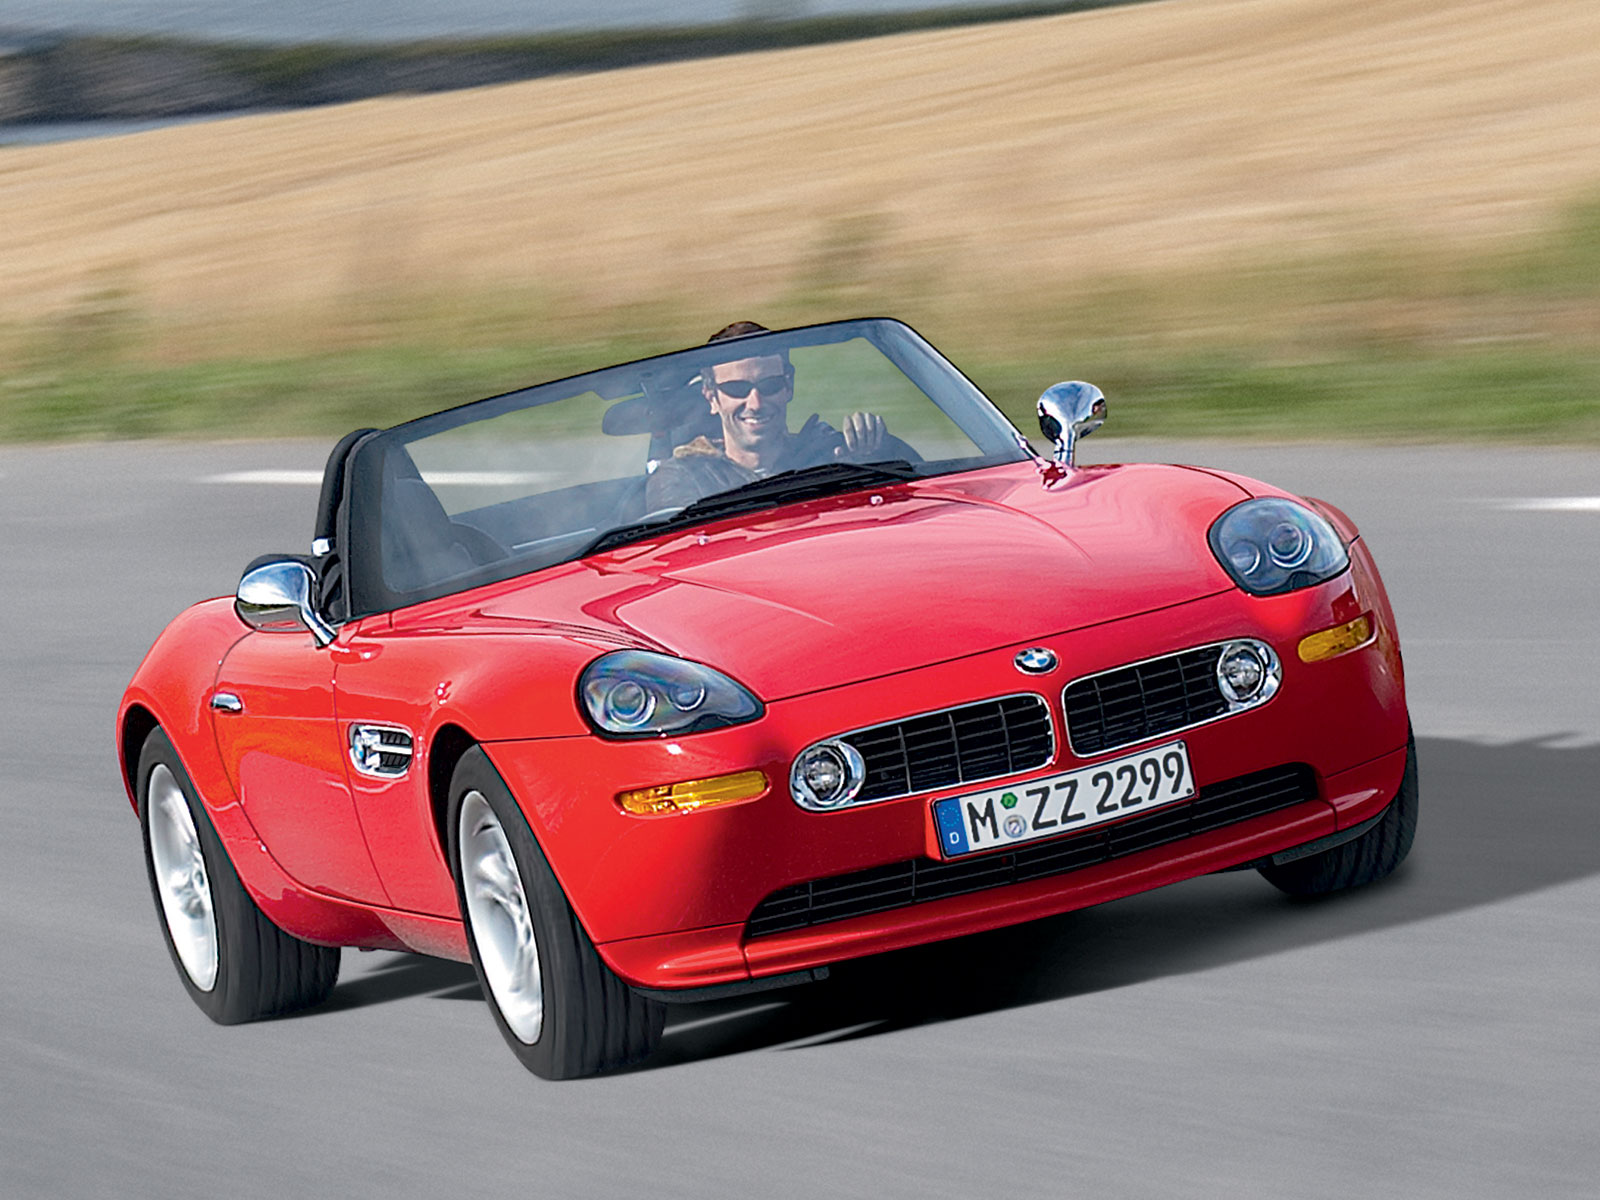 2000 BMW Z8 Convertible 2-door